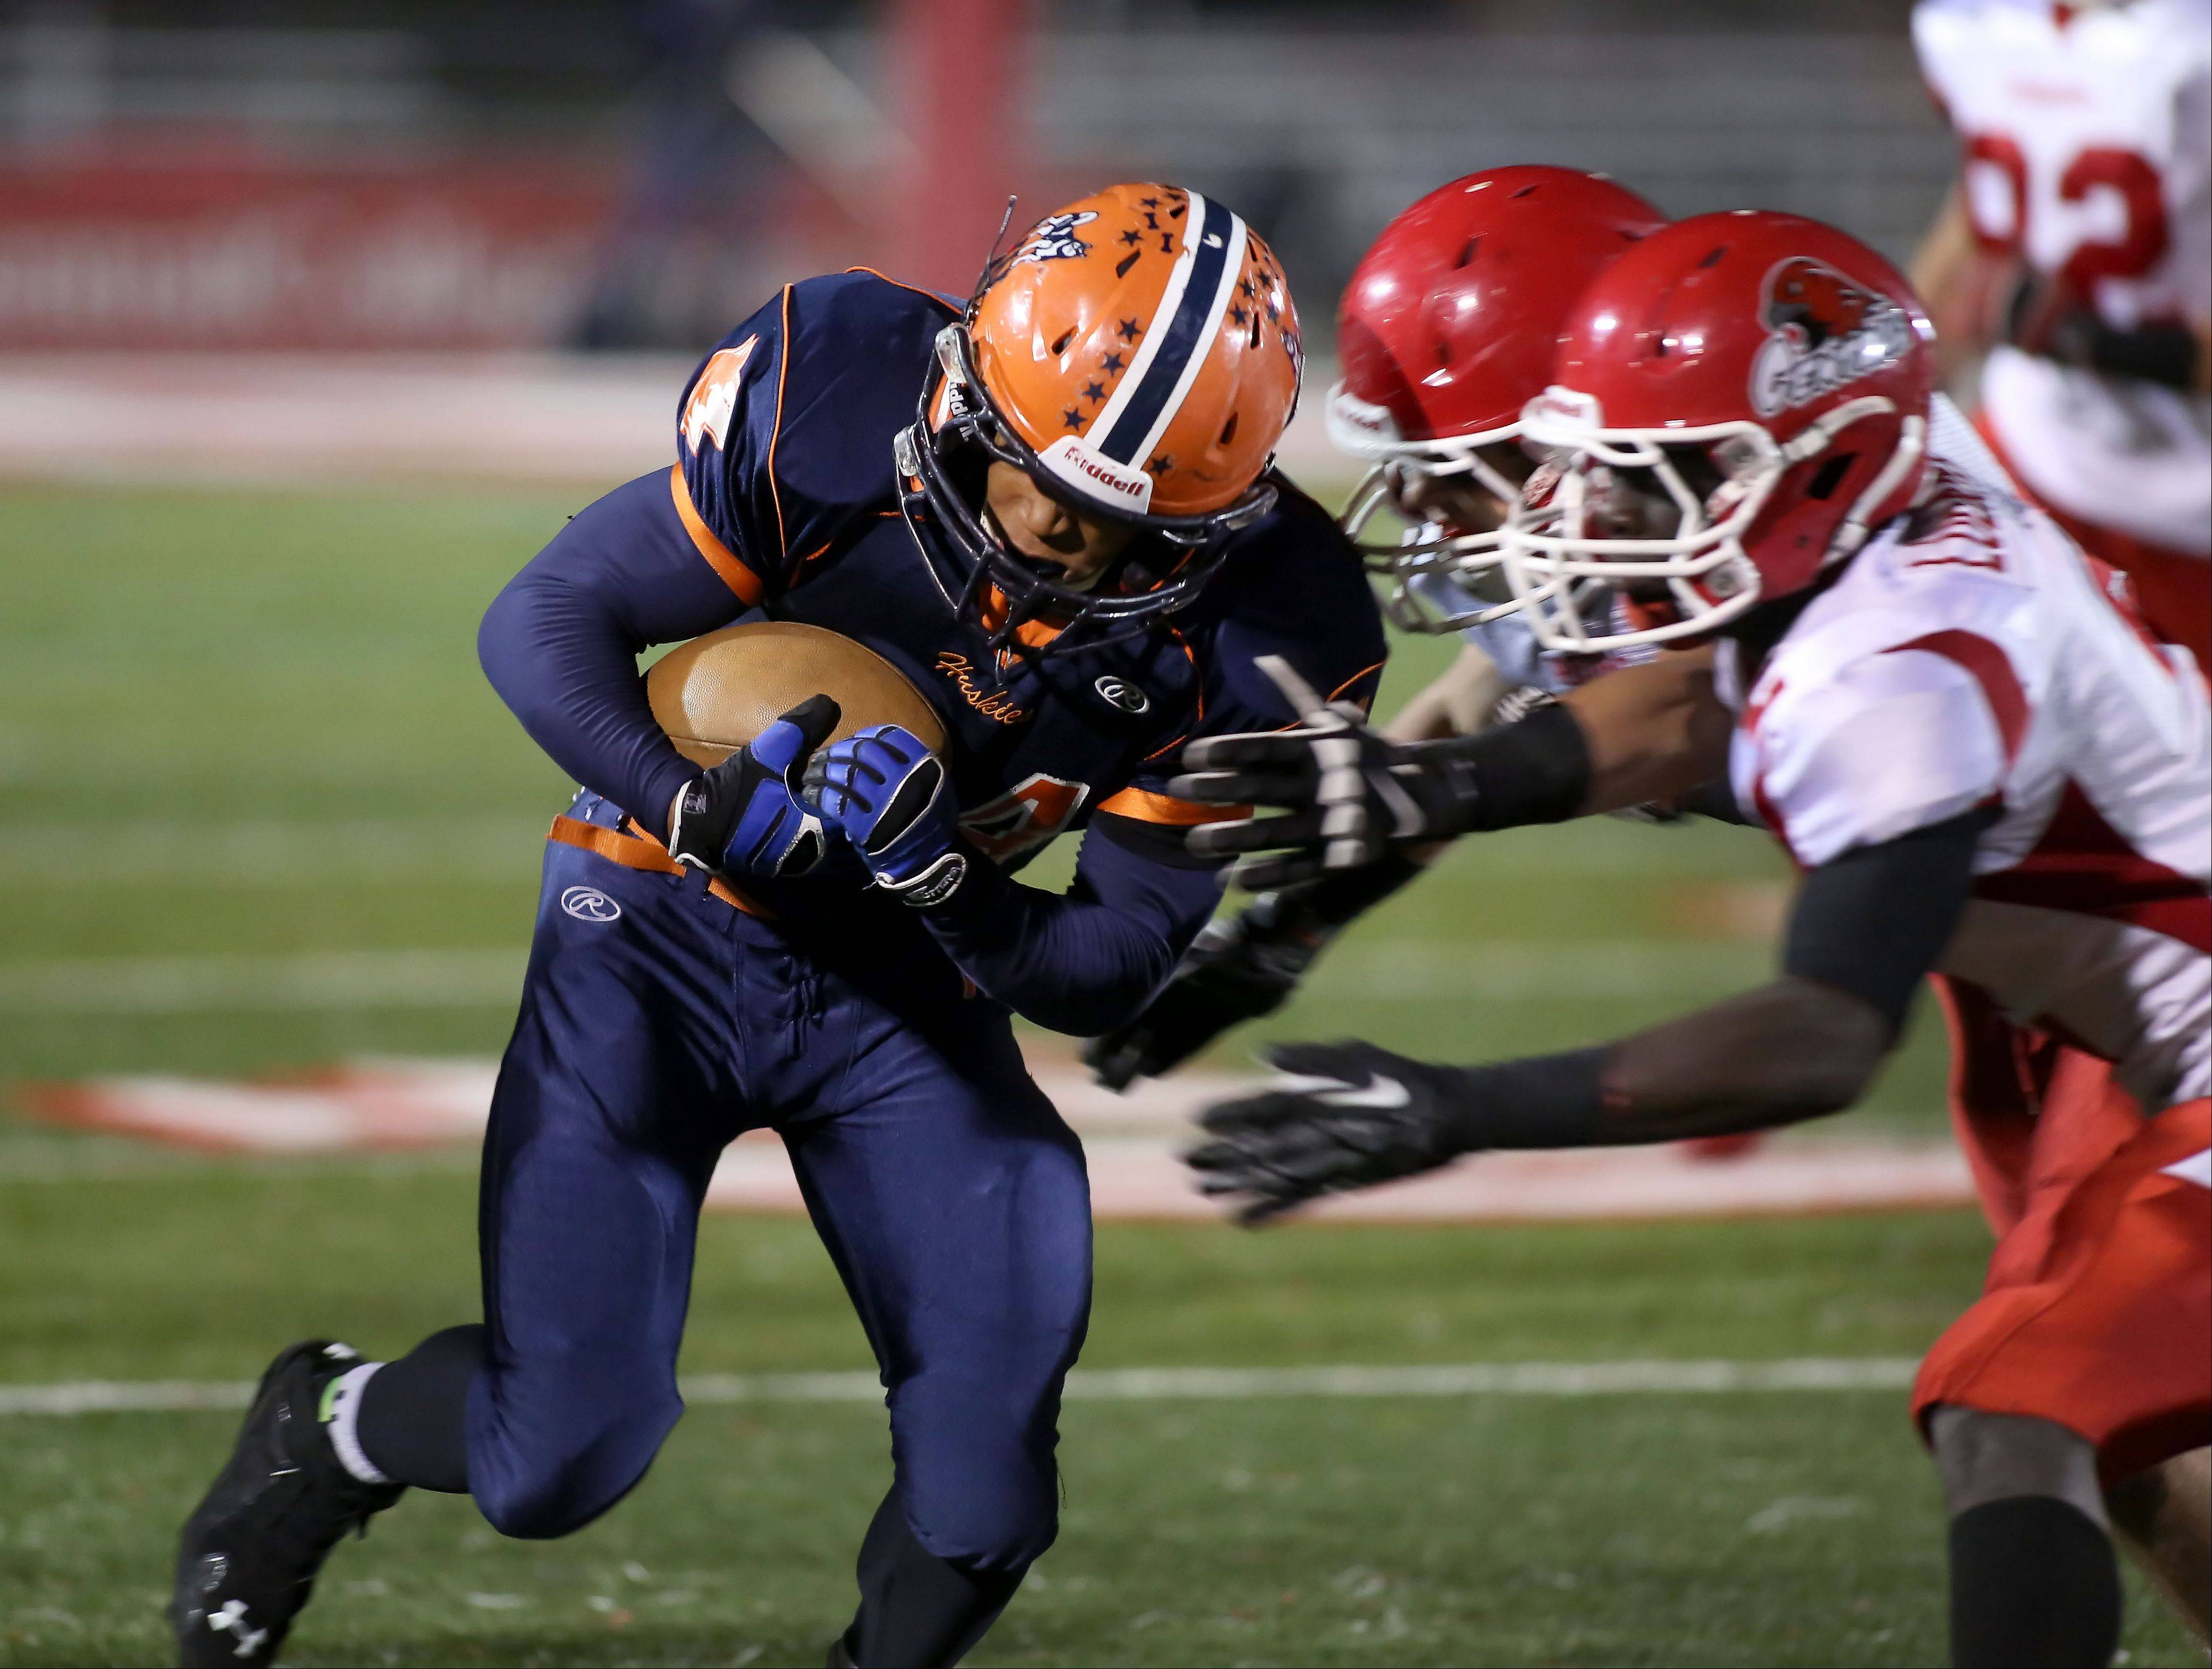 Images: Naperville North vs. Naperville Central football